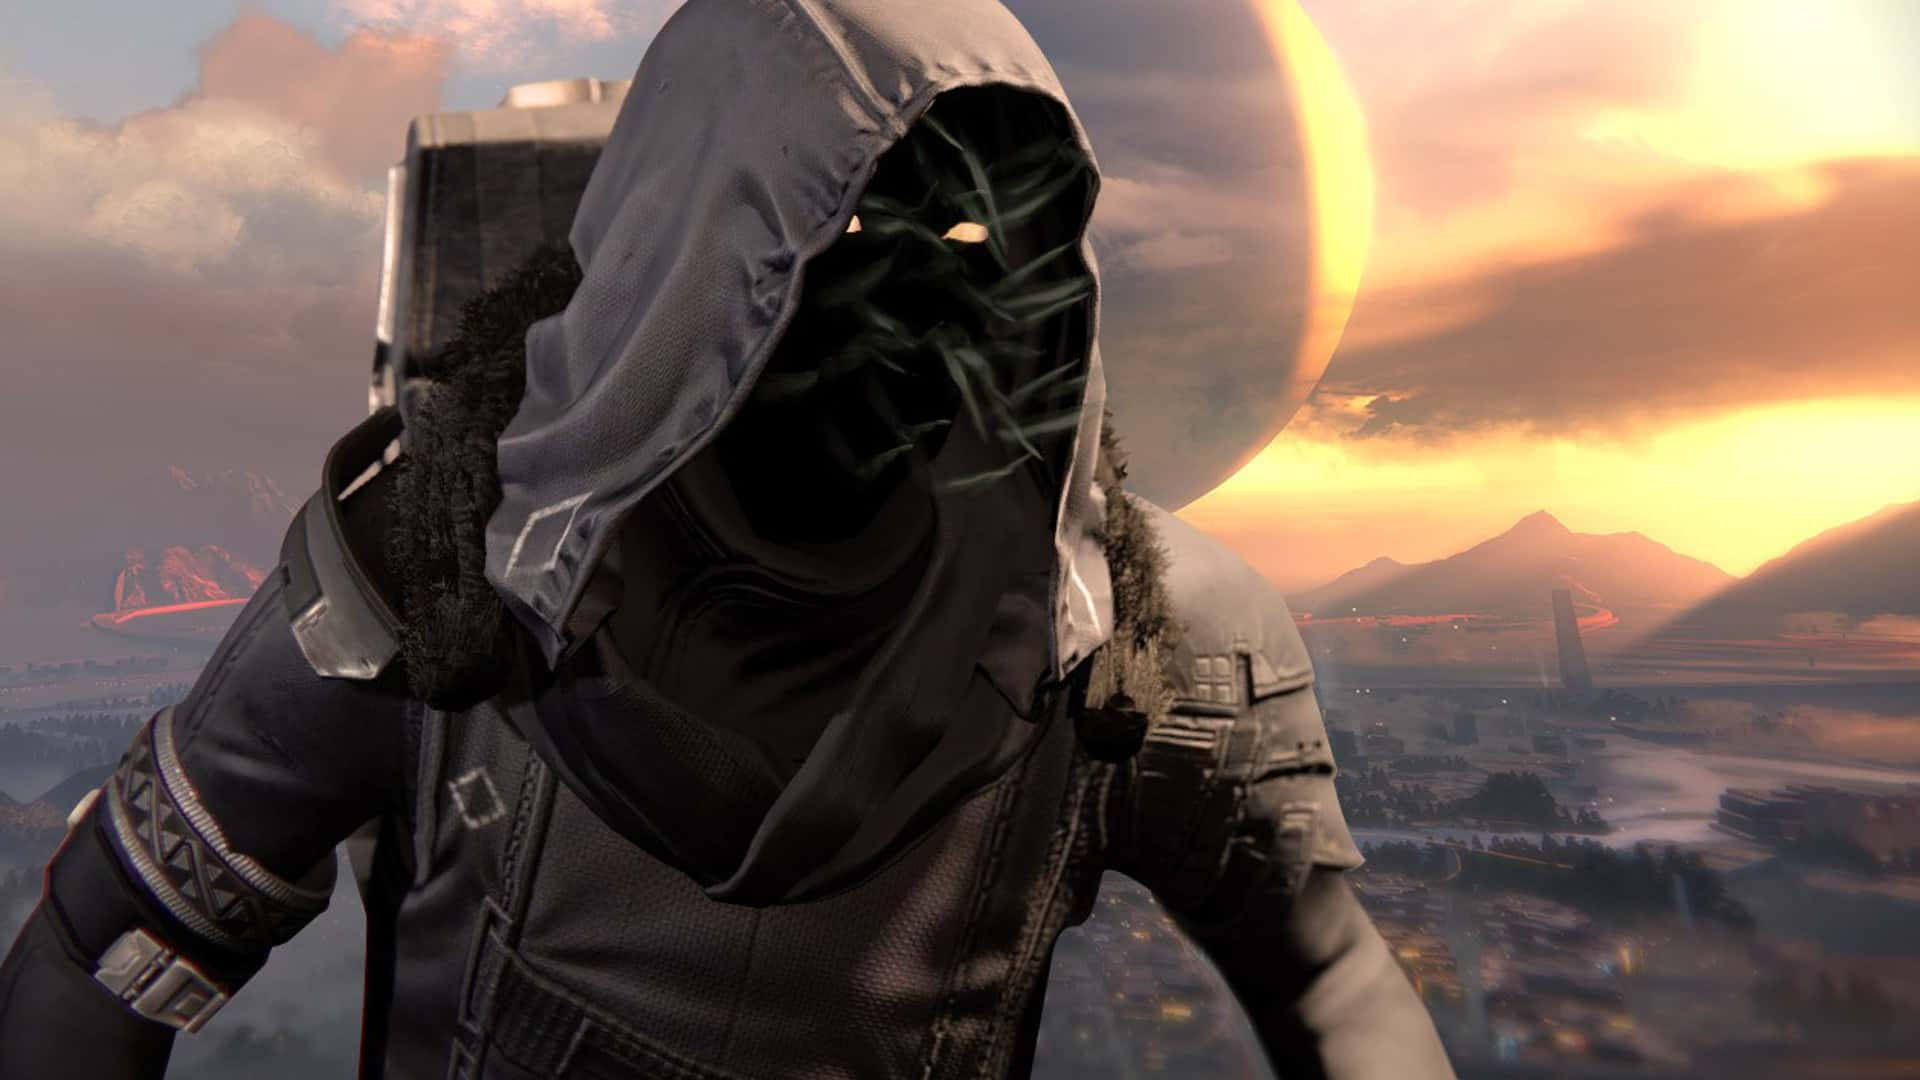 Destiny 2 Xur Location Today June 5, Destiny 2 Xur Location Today June 5, 2020, MP1st, MP1st